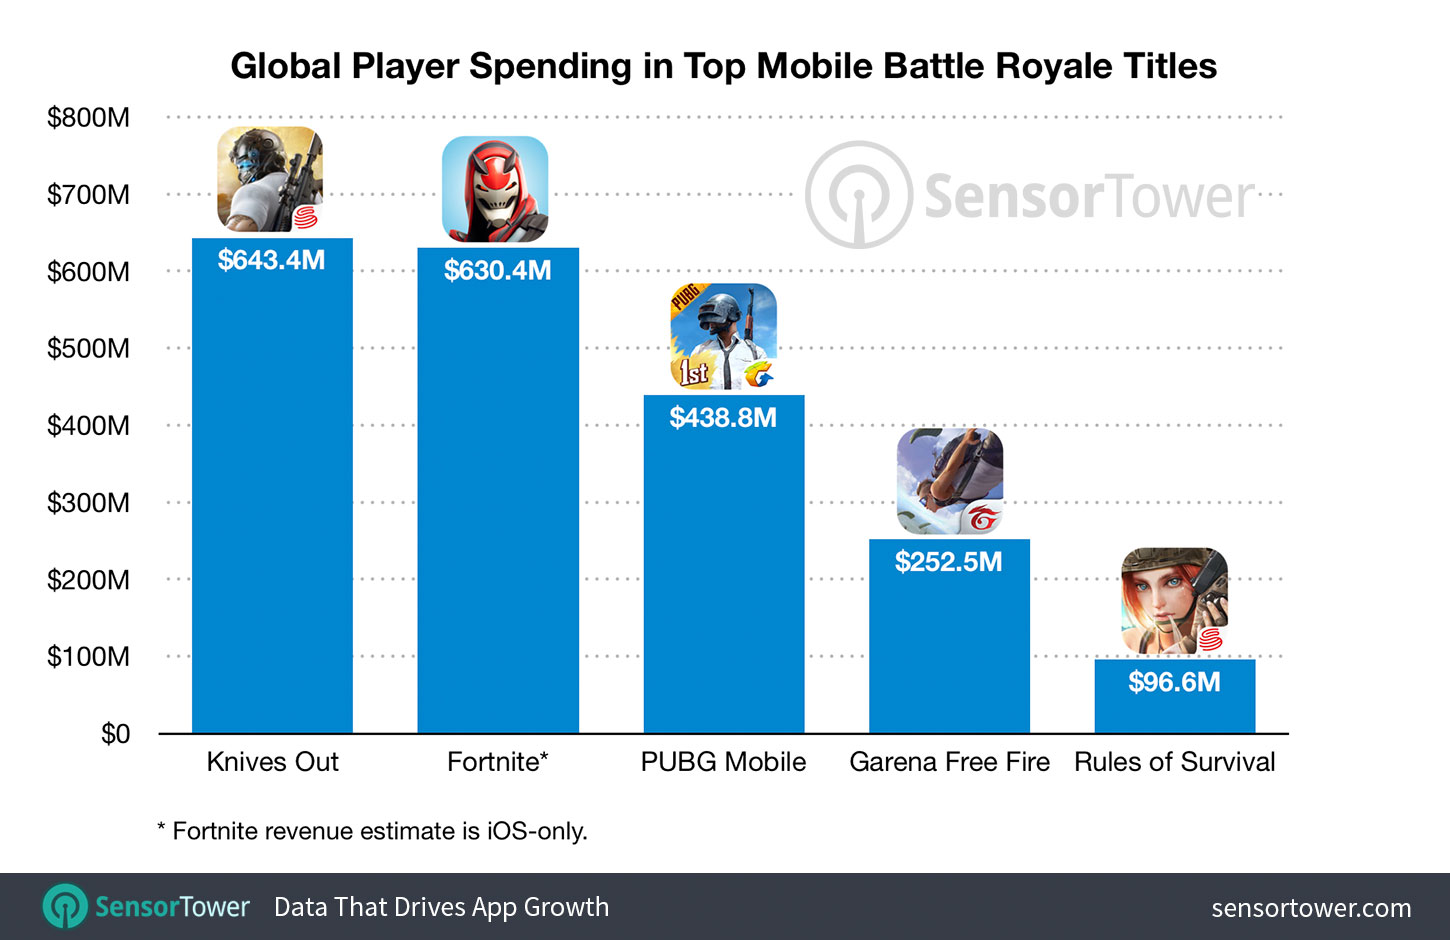 mobile-battle-royale-top-five-revenue-totals.jpg